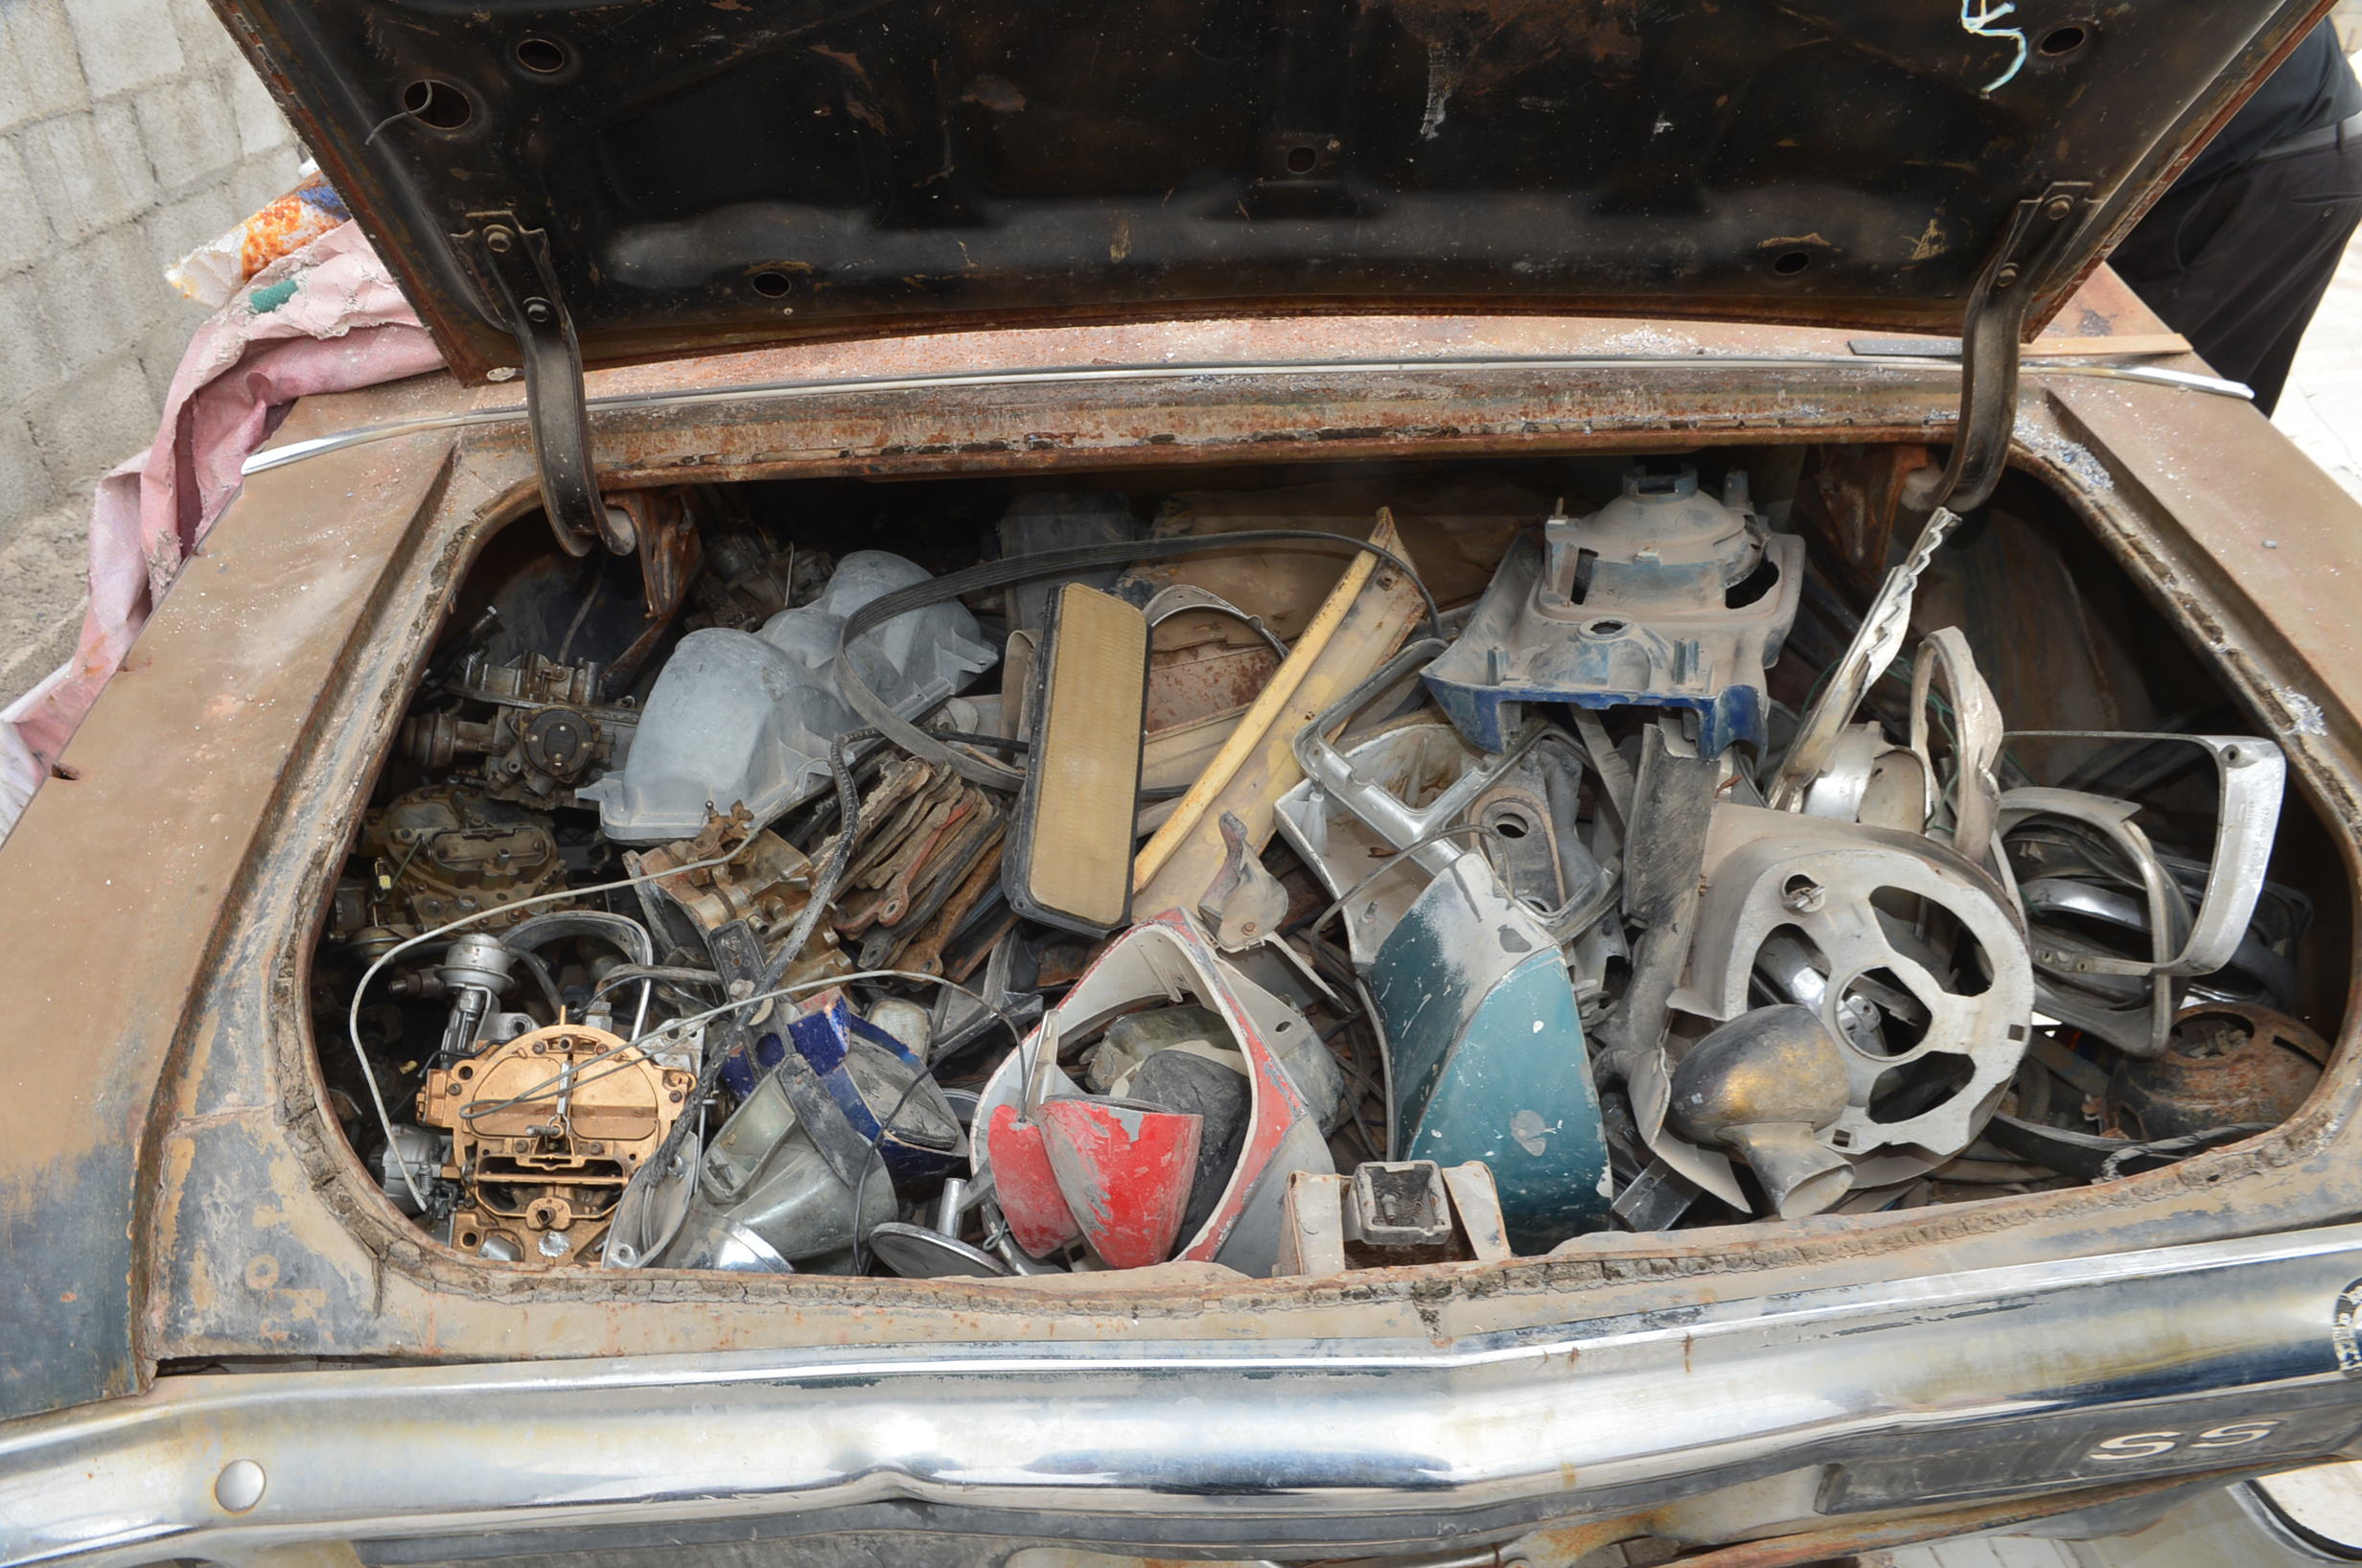 The trunk was also full of car parts.